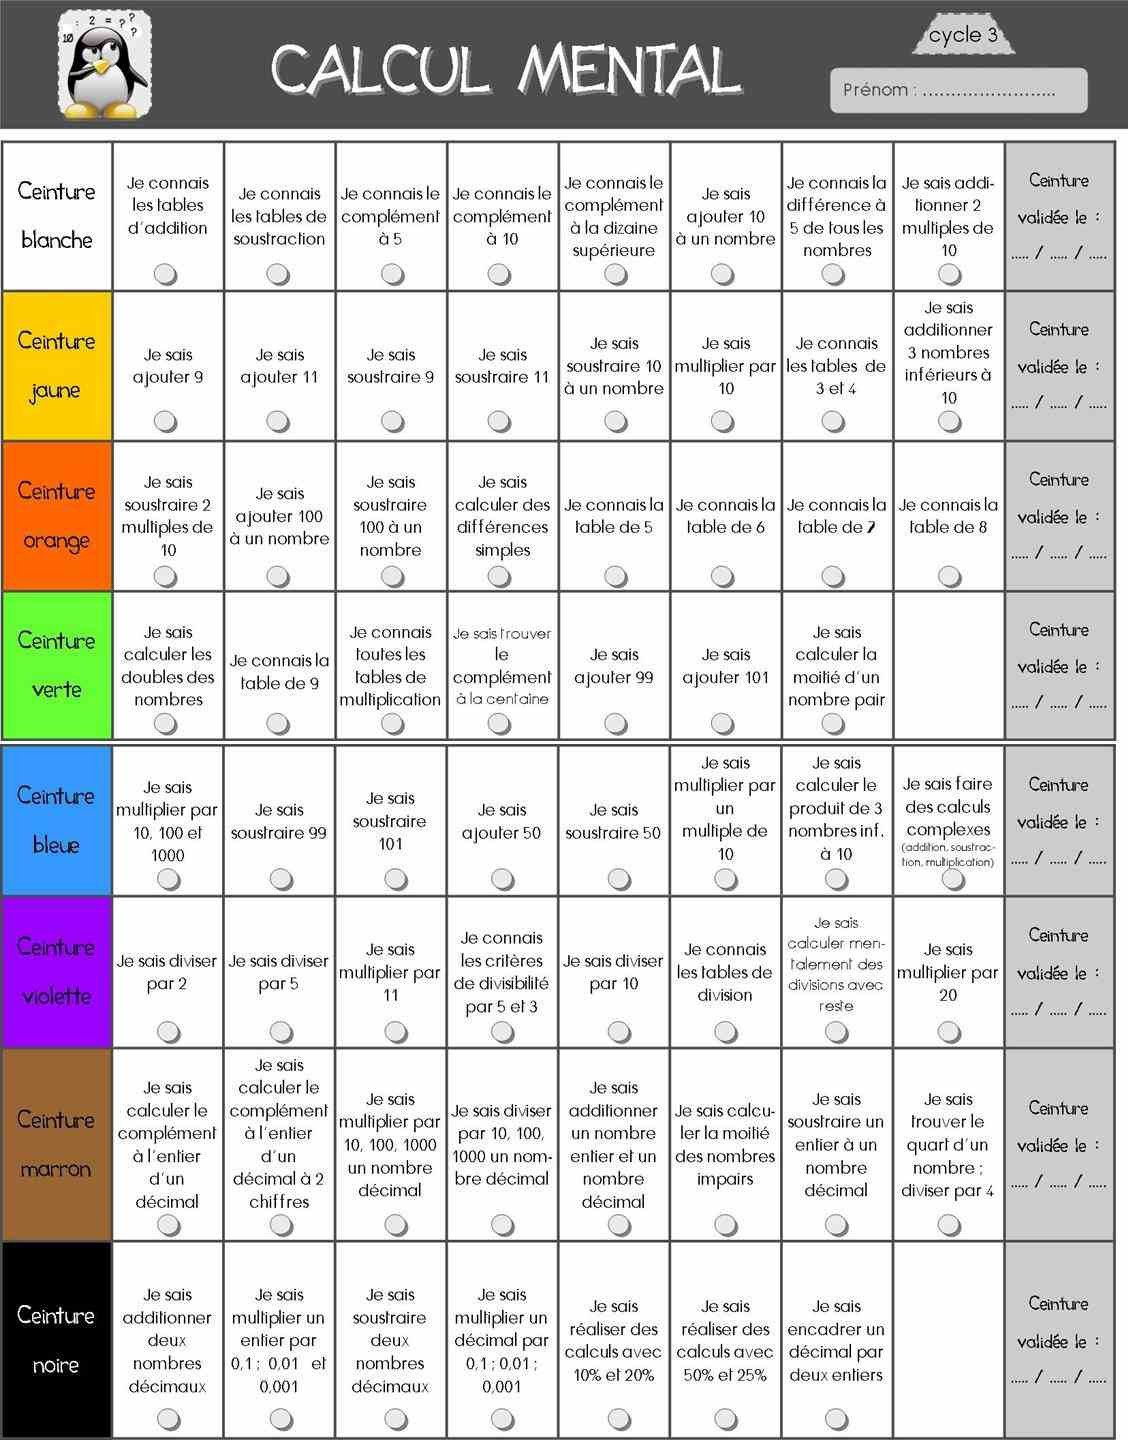 Ceintures calcul mental c3 laclasse2delphine grade 6 - Calcul mental table de multiplication ...